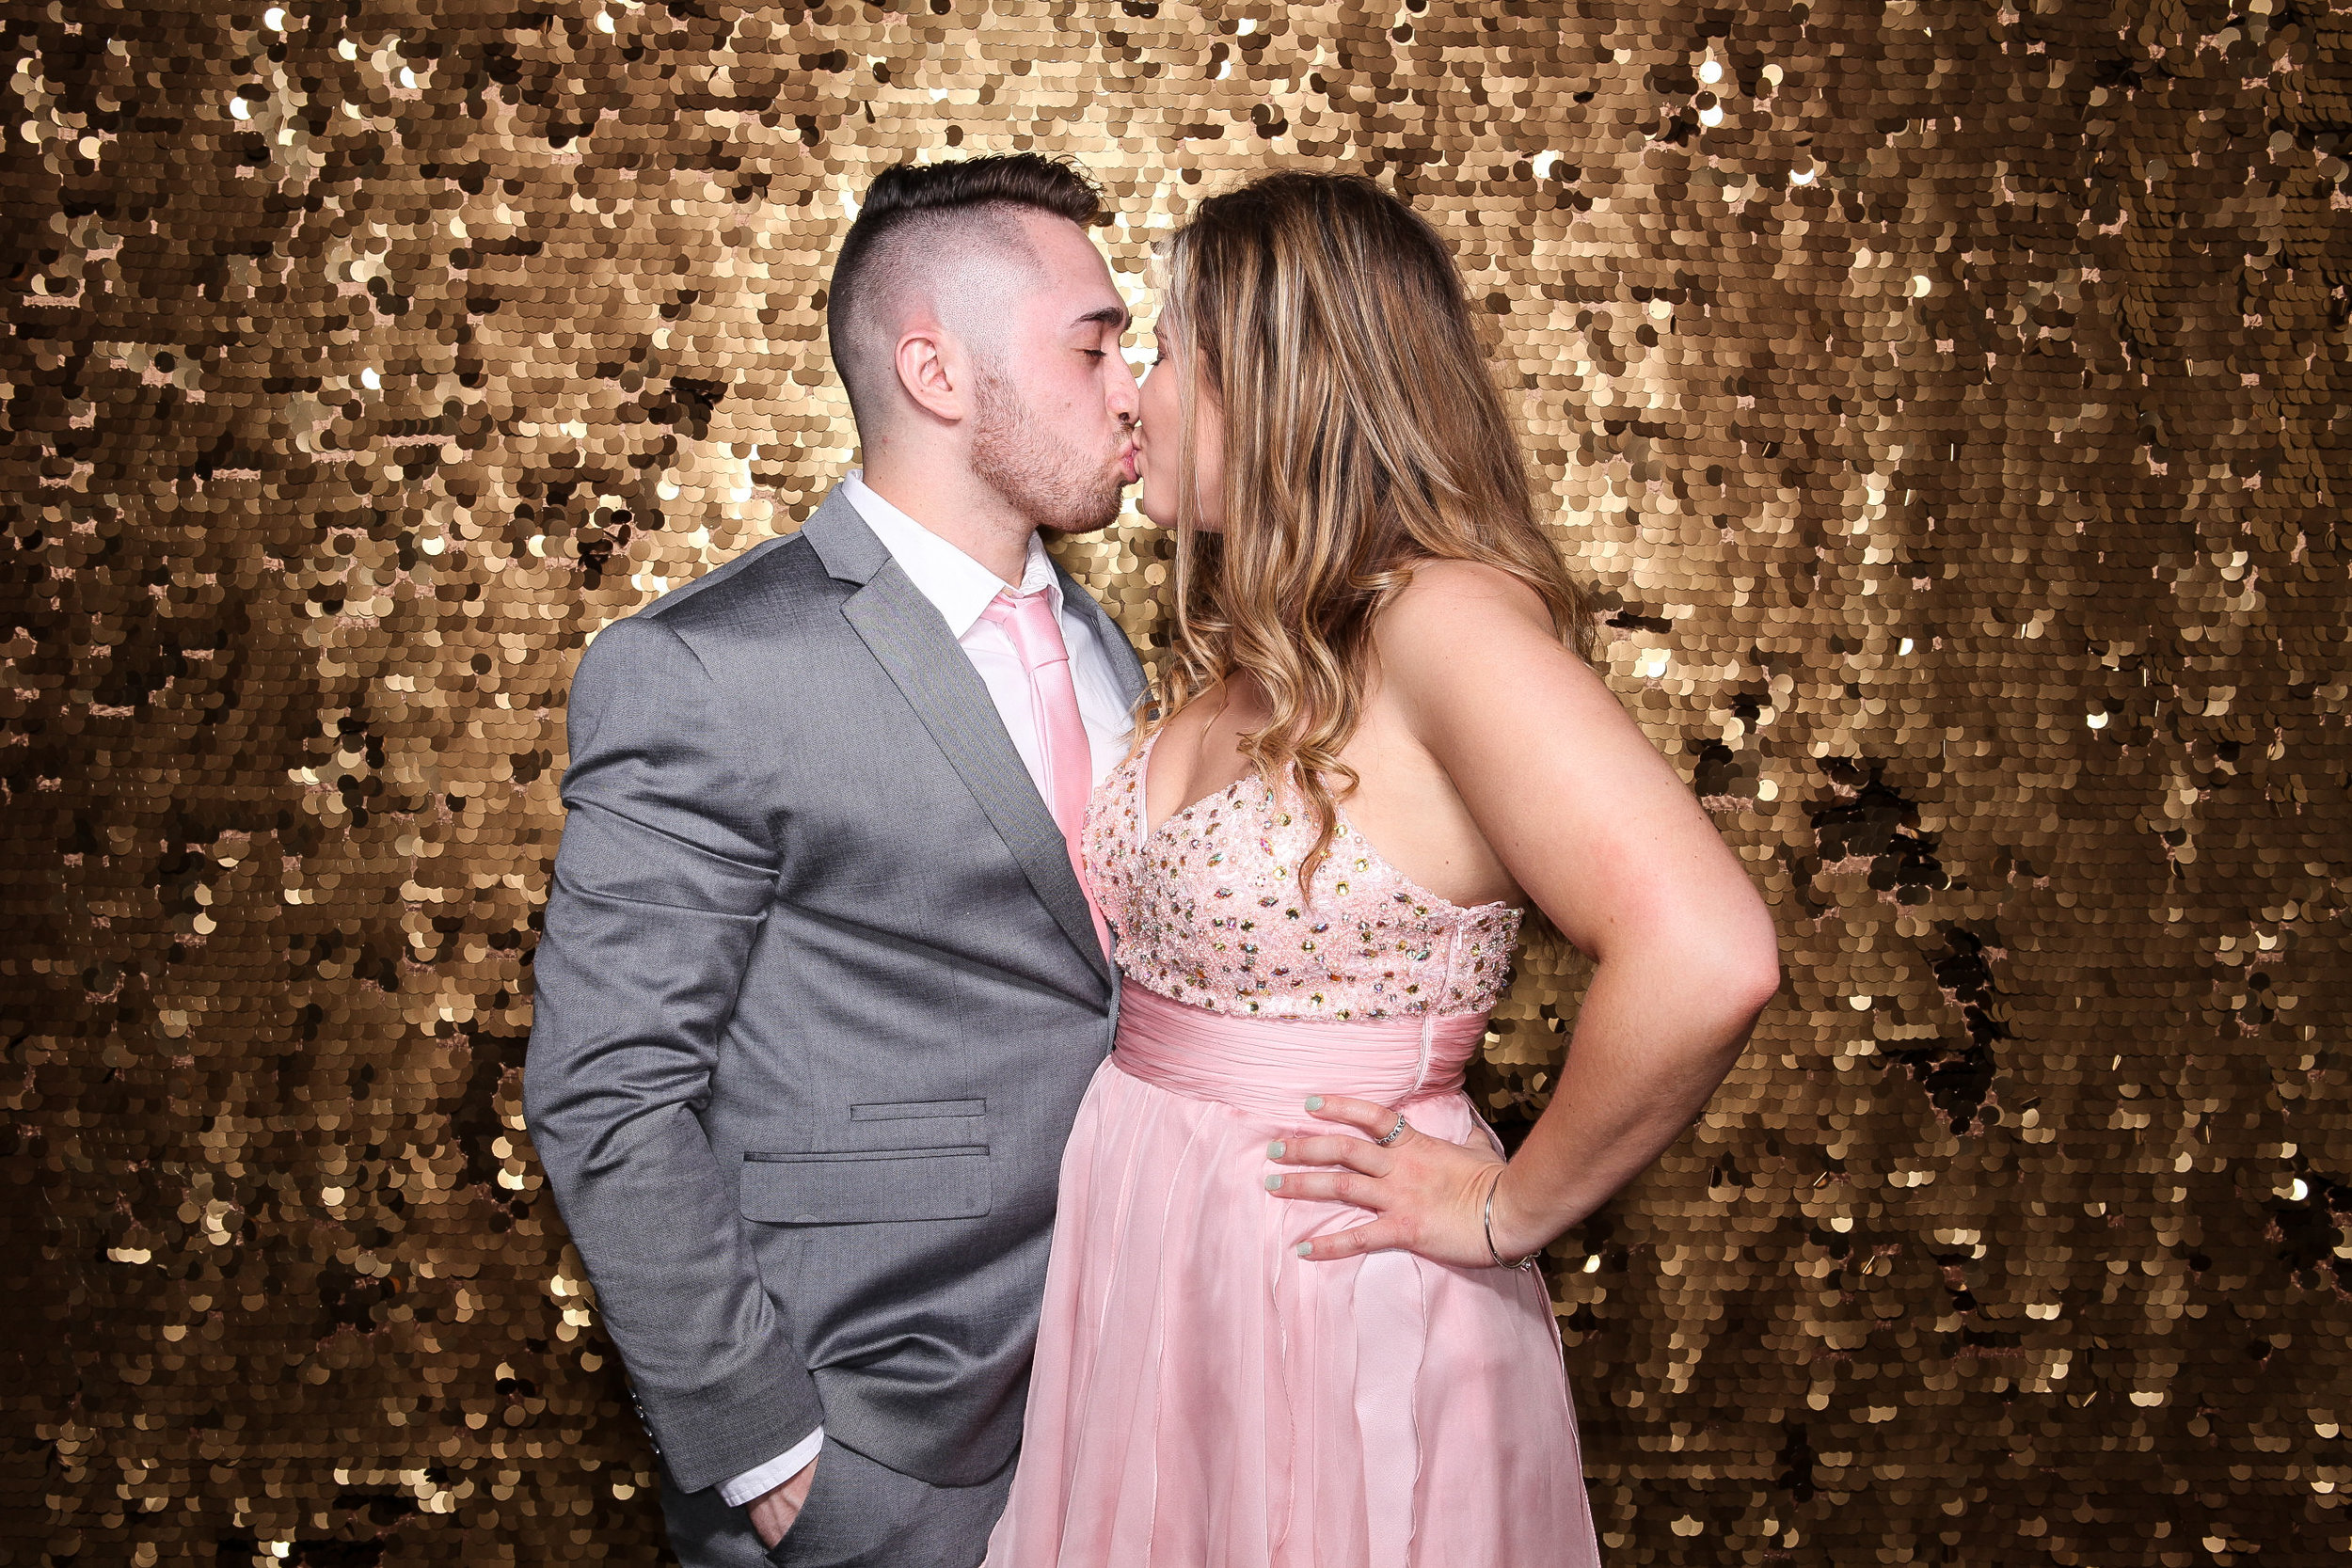 20190503_Adelphi_Senior_Formal-322.jpg